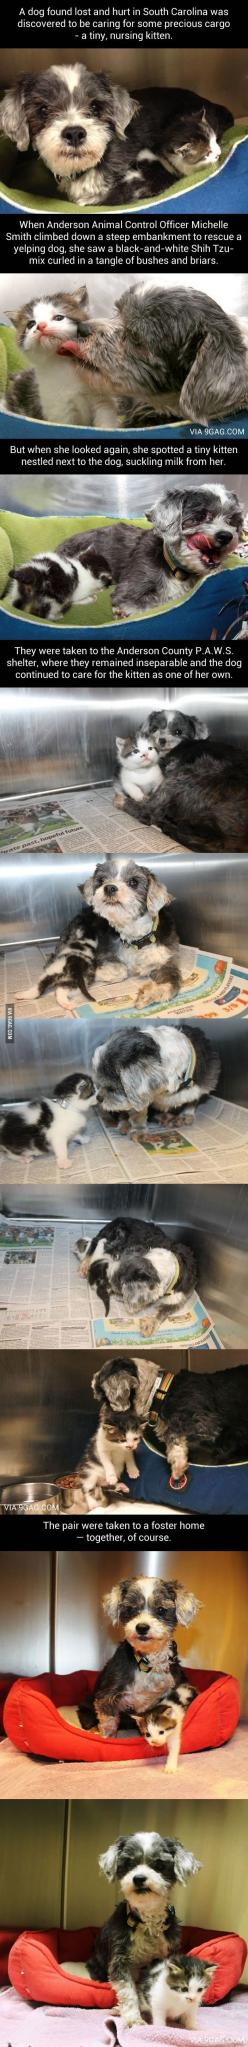 : Kitten, Cat, Dog Finds, Dogs, Sweet, My Heart, Animal